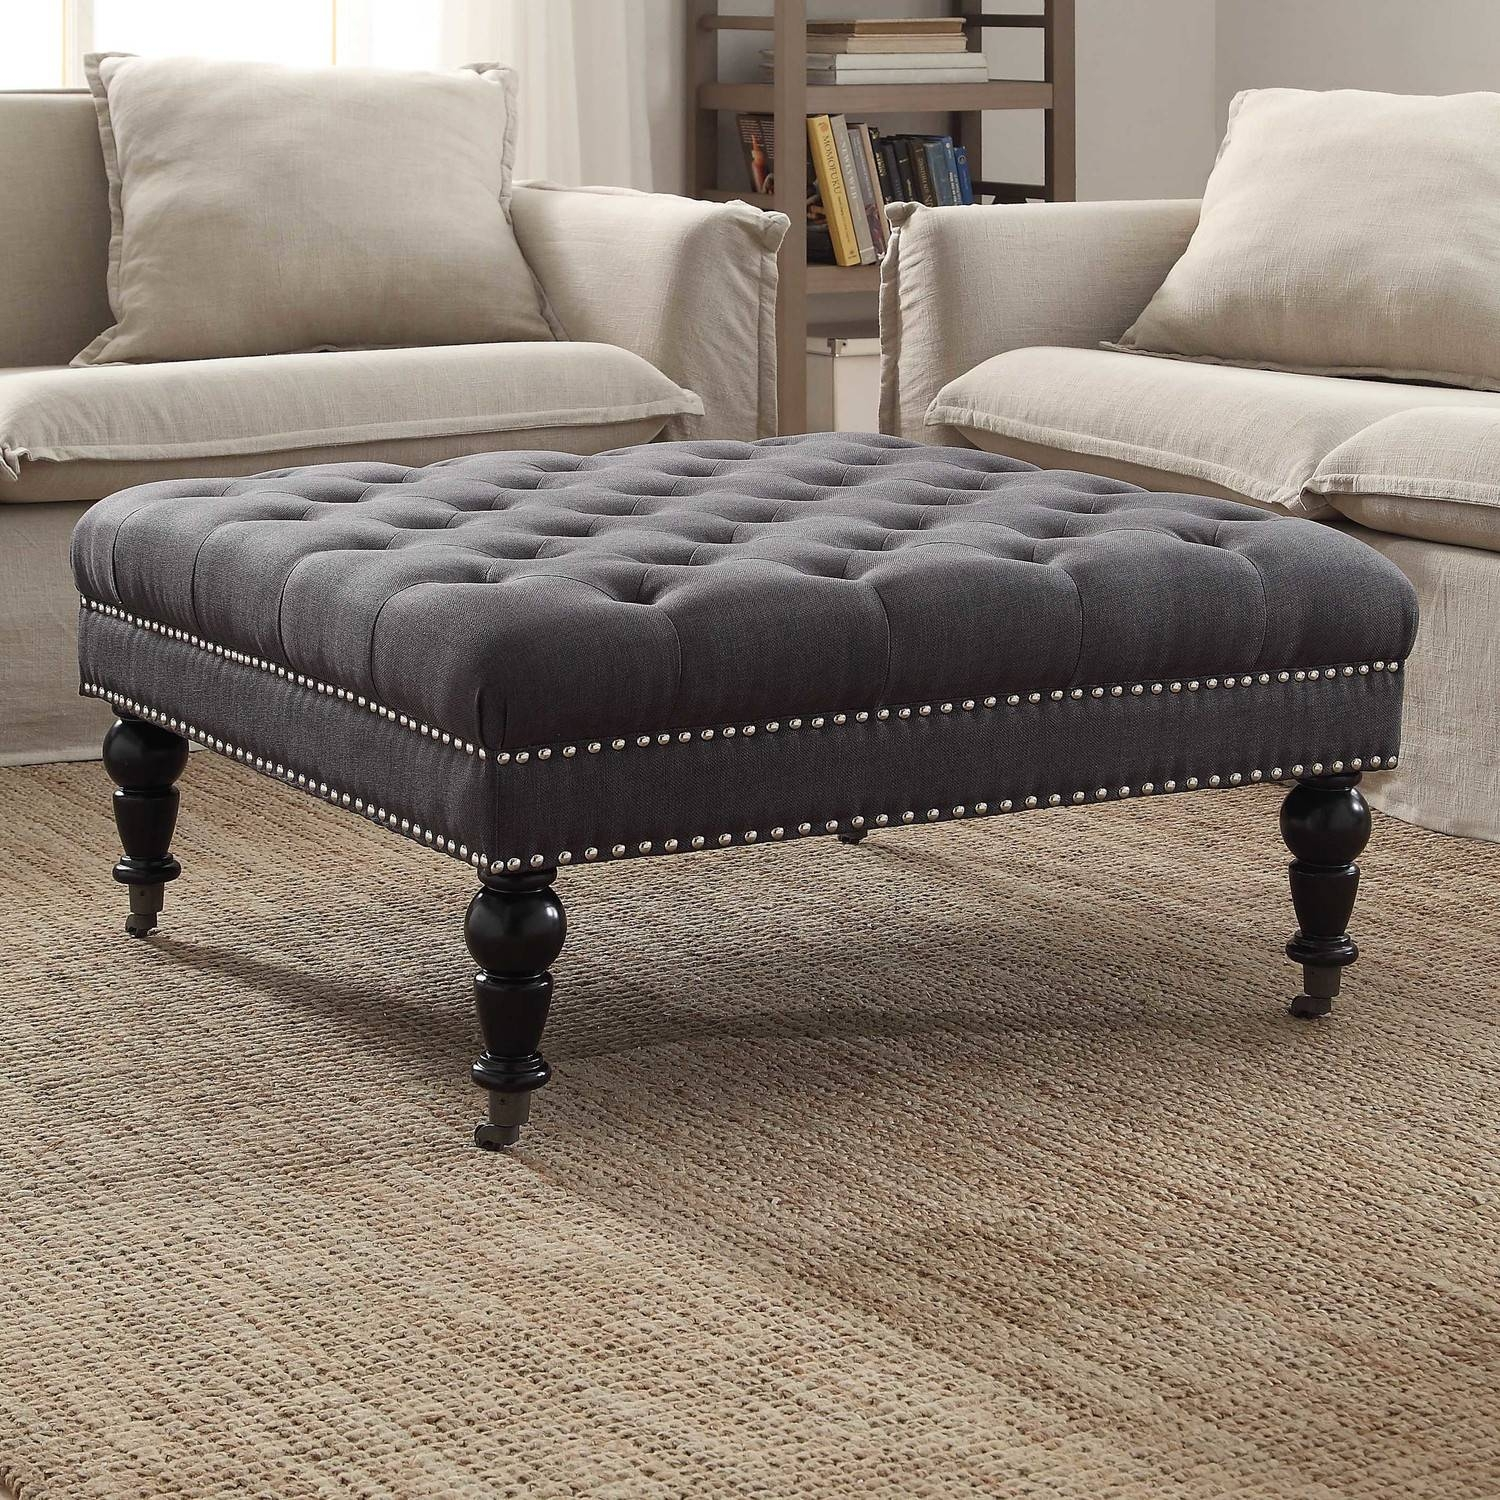 Furniture: Nice Oversized Ottoman For Living Room Furniture Idea Intended For Round Upholstered Coffee Tables (View 17 of 30)